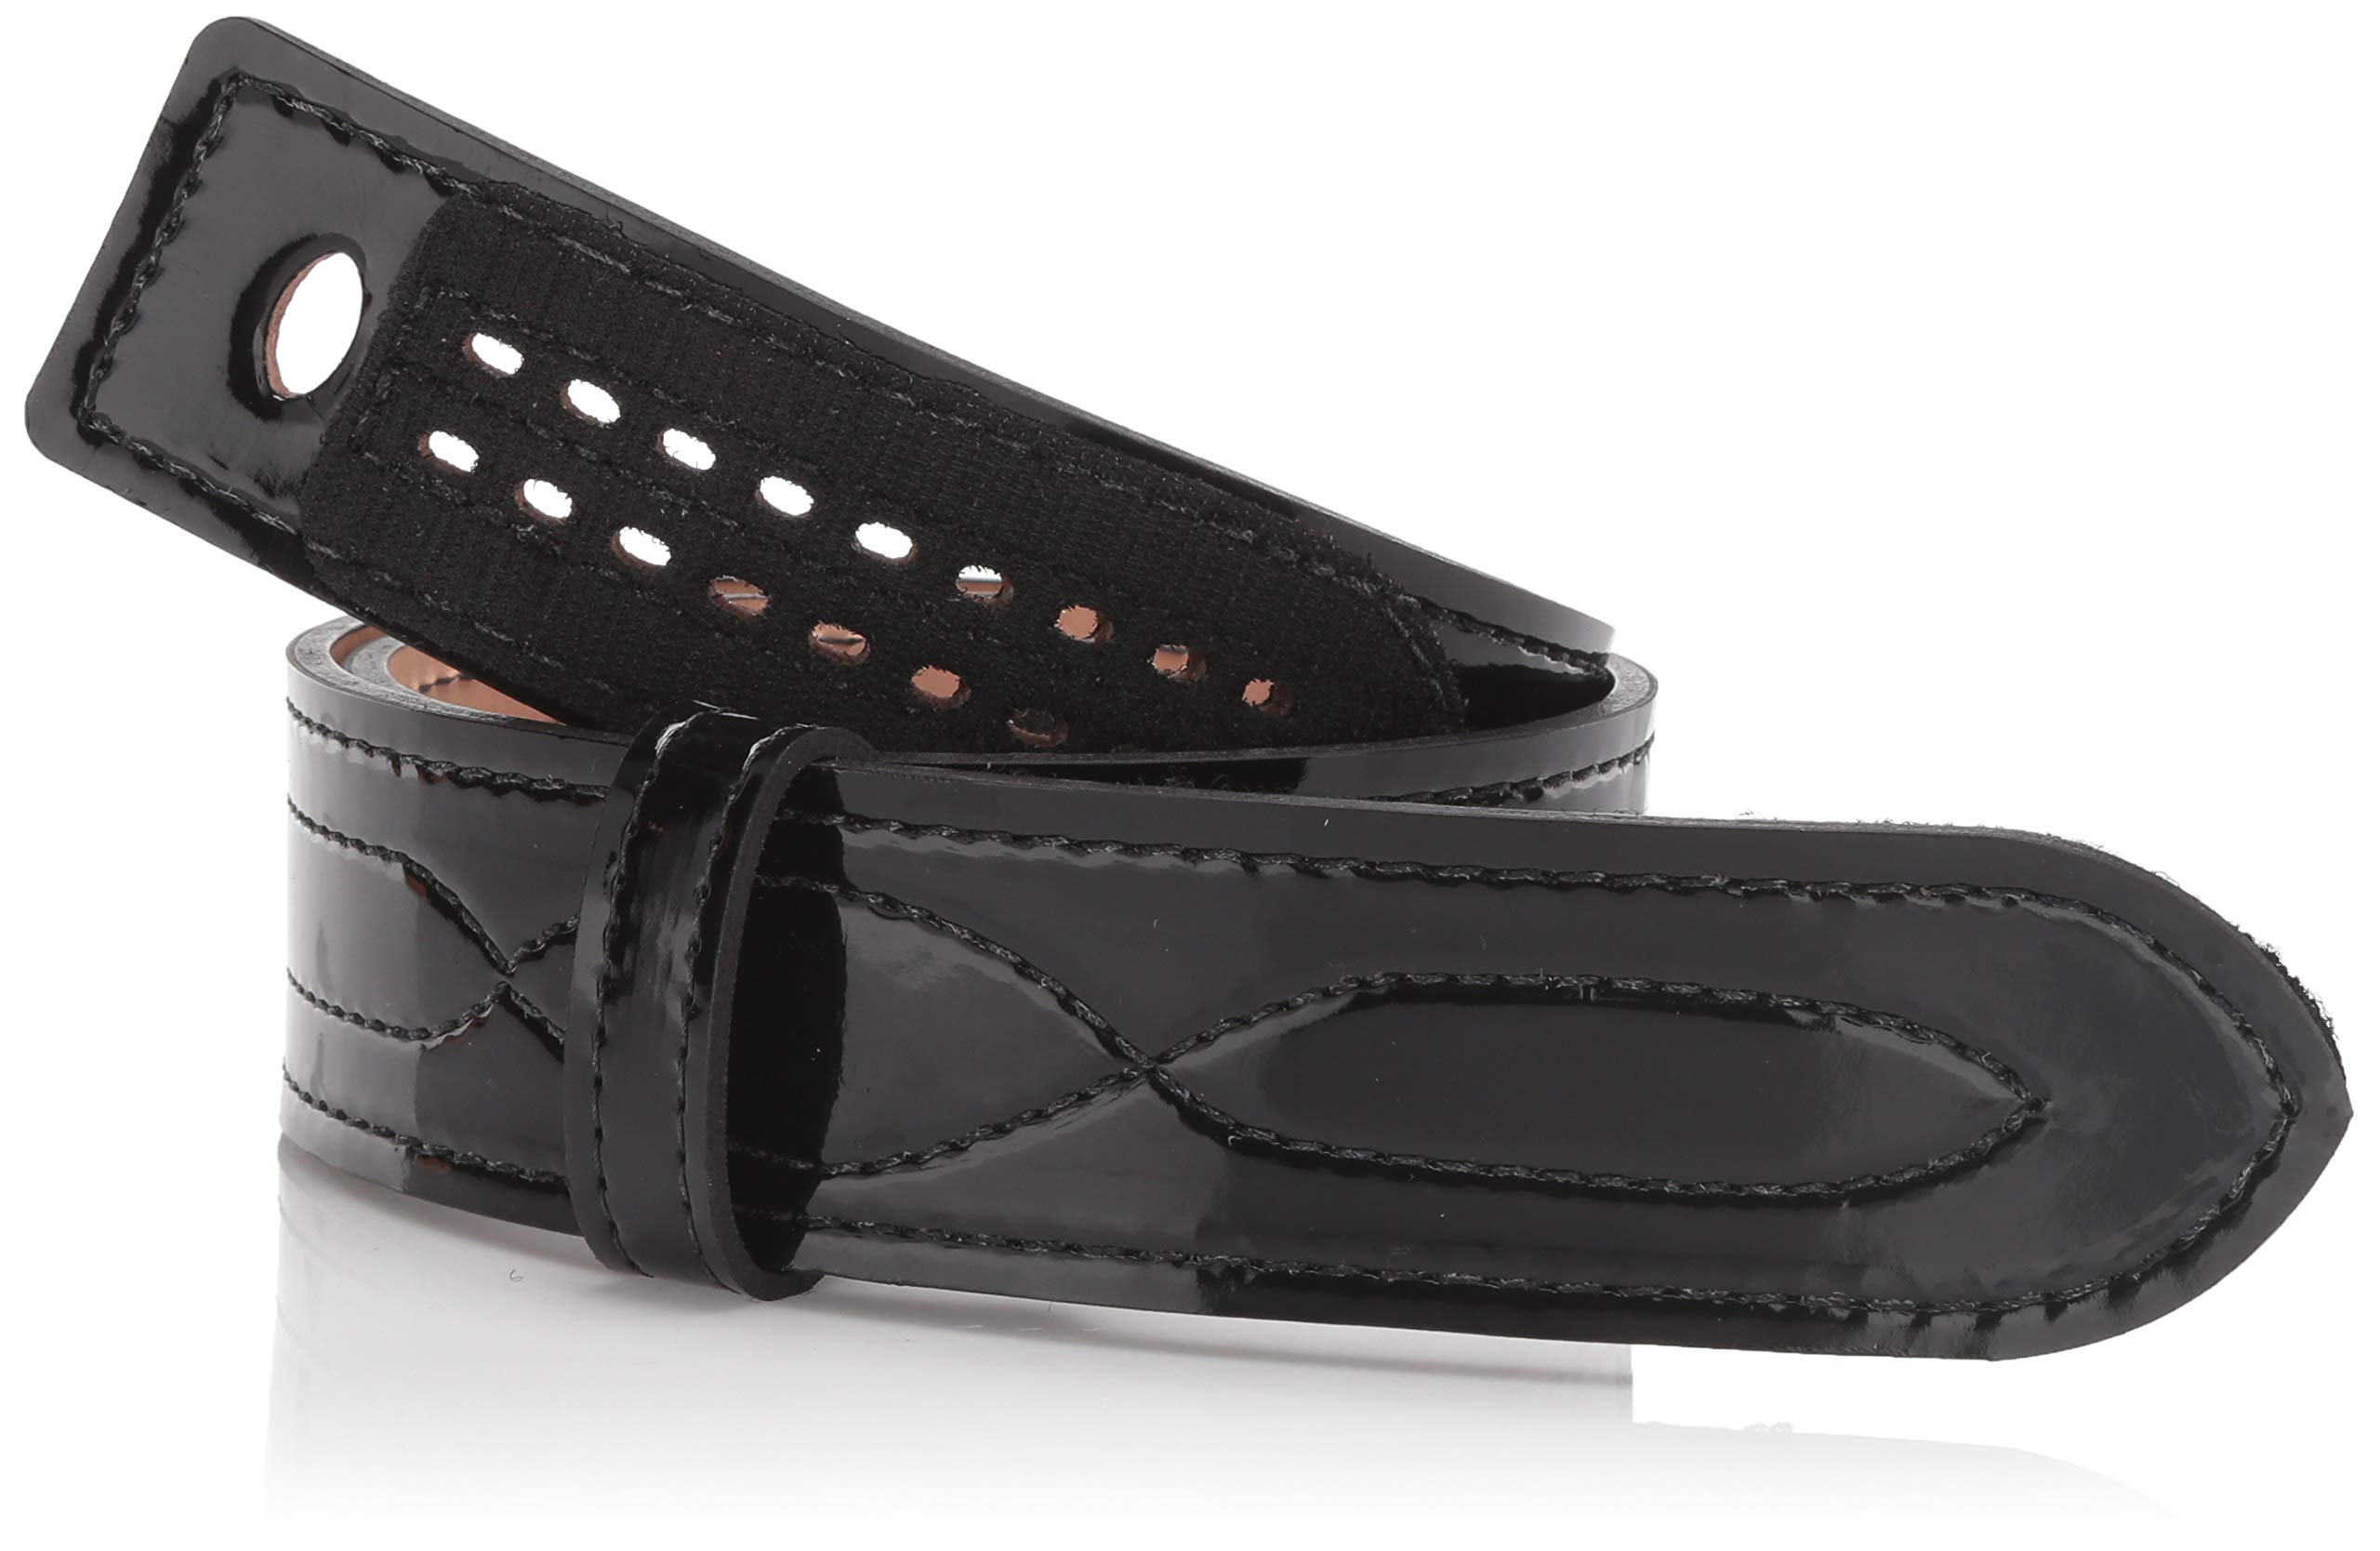 Safariland 94 Duty Belt from Buckleless Duty Belt (High Gloss Black, Size 42) by Safariland